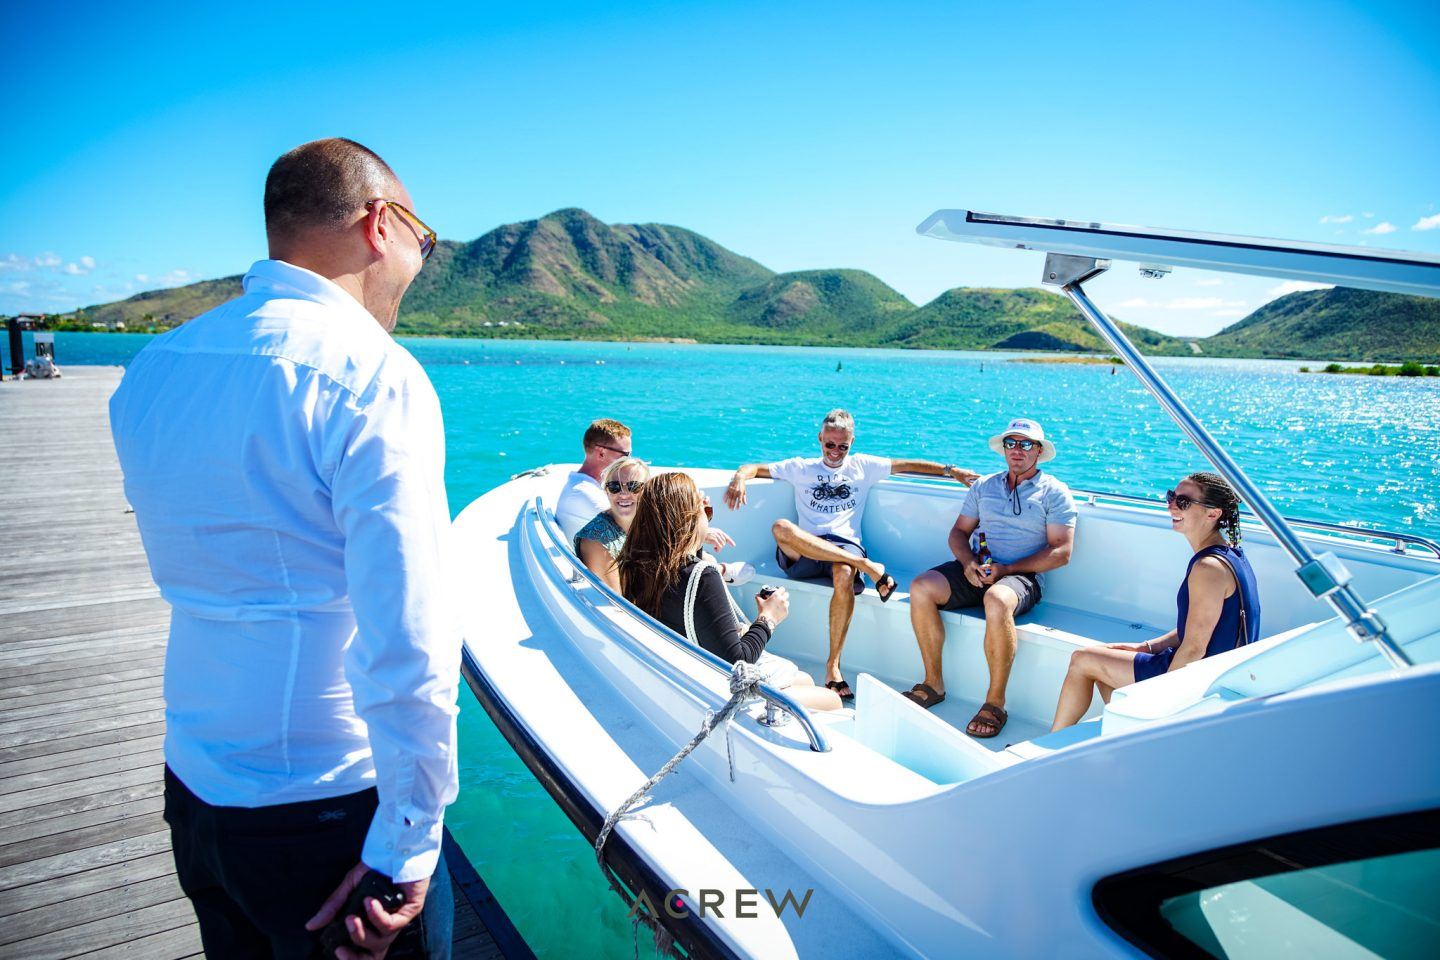 CrewMatch yacht crew services